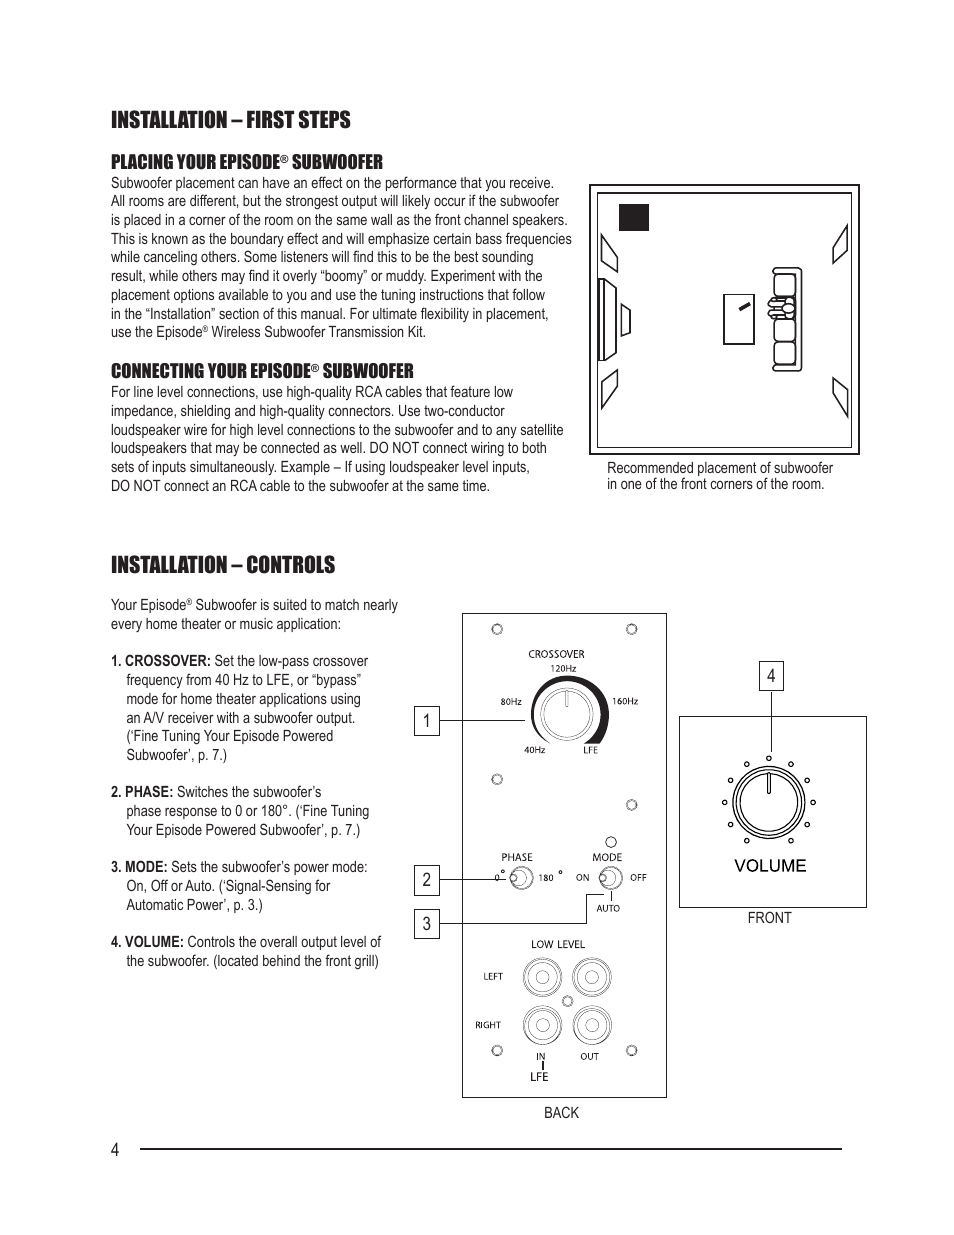 installation – first steps, installation – controls | staub electronics es- sub-cub8-110 episode - cub 110 watt powered subwoofer user manual | page 4  / 8